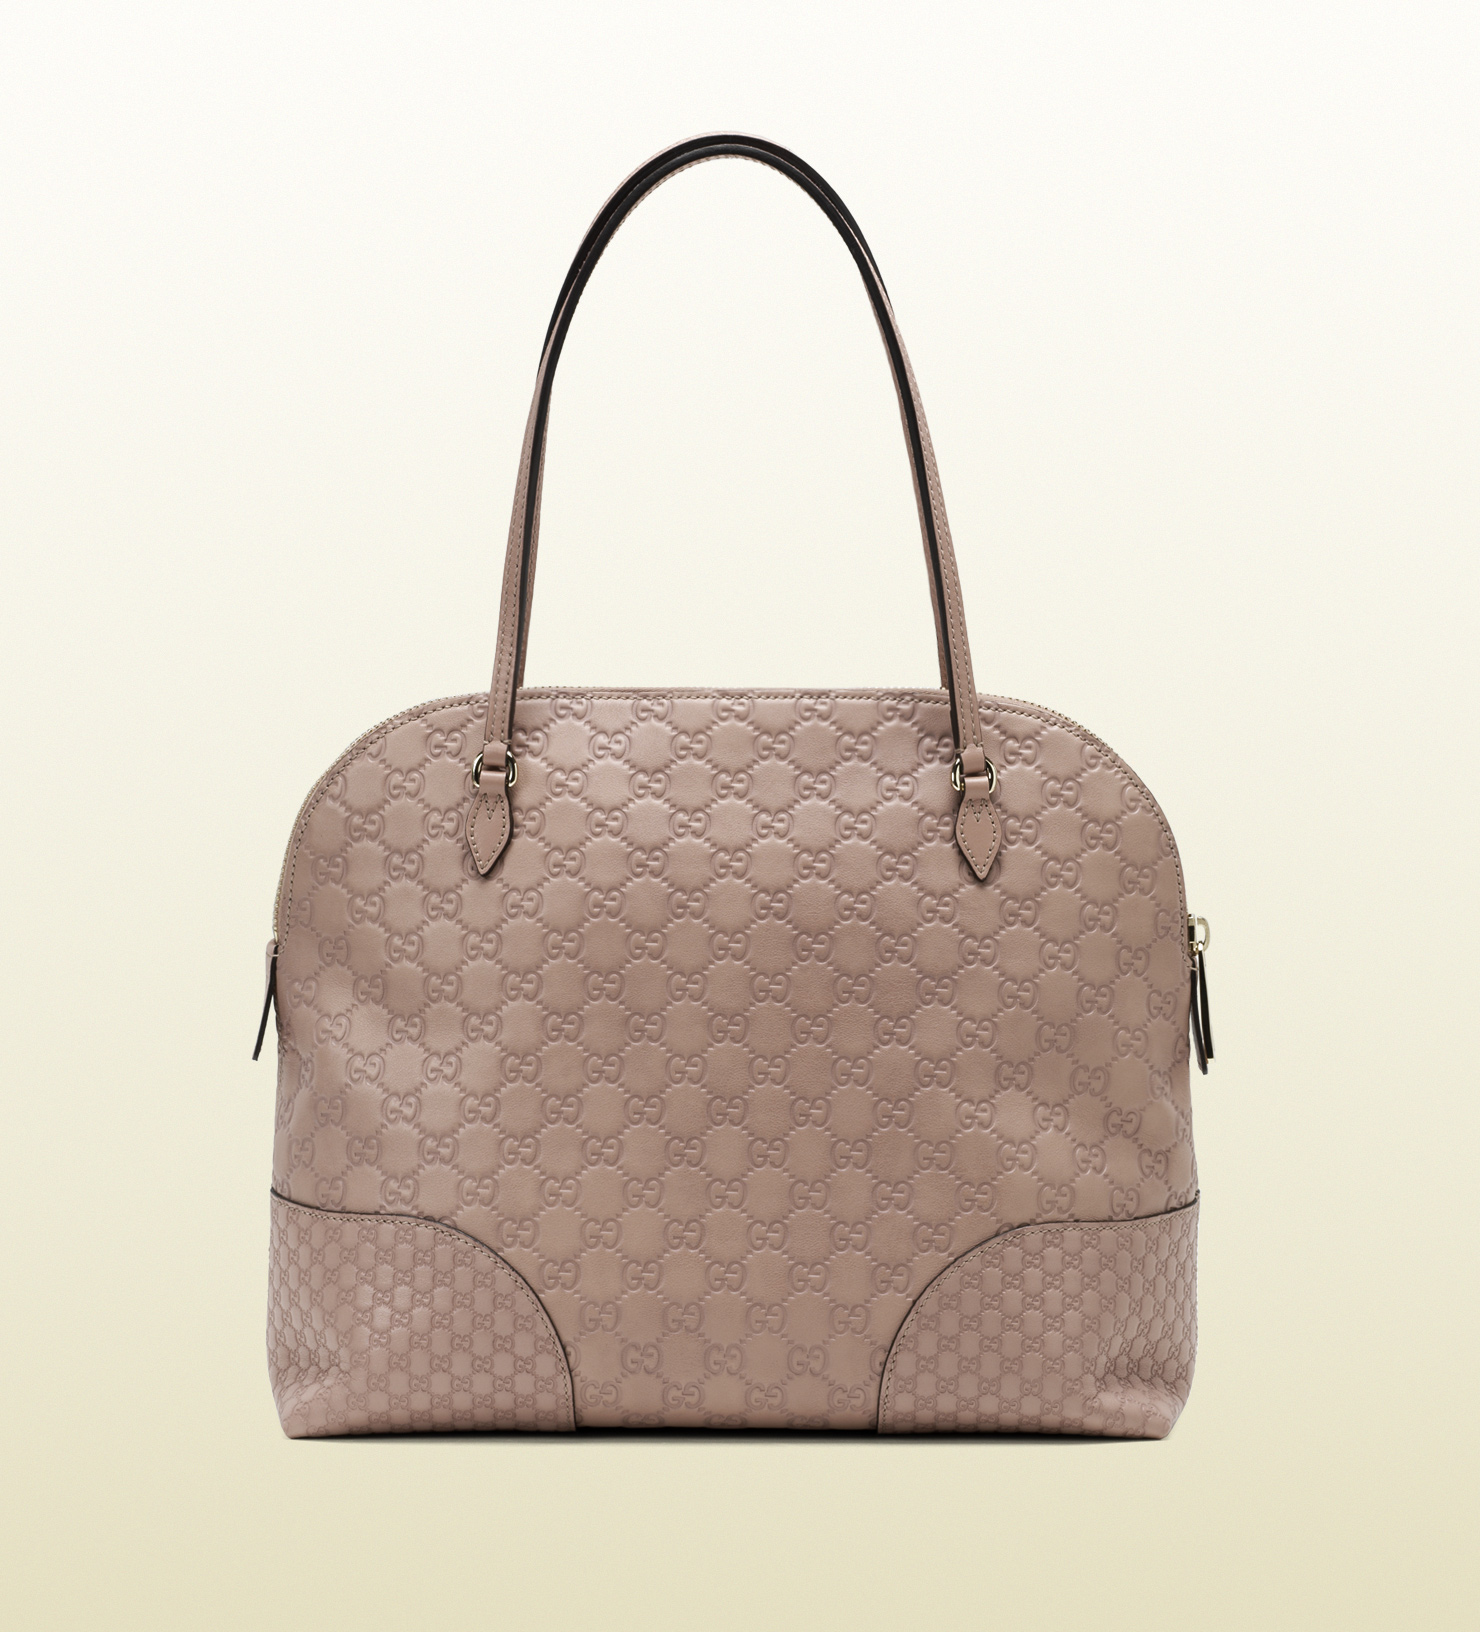 Lyst - Gucci Bree Ssima Leather Shoulder Bag in Pink